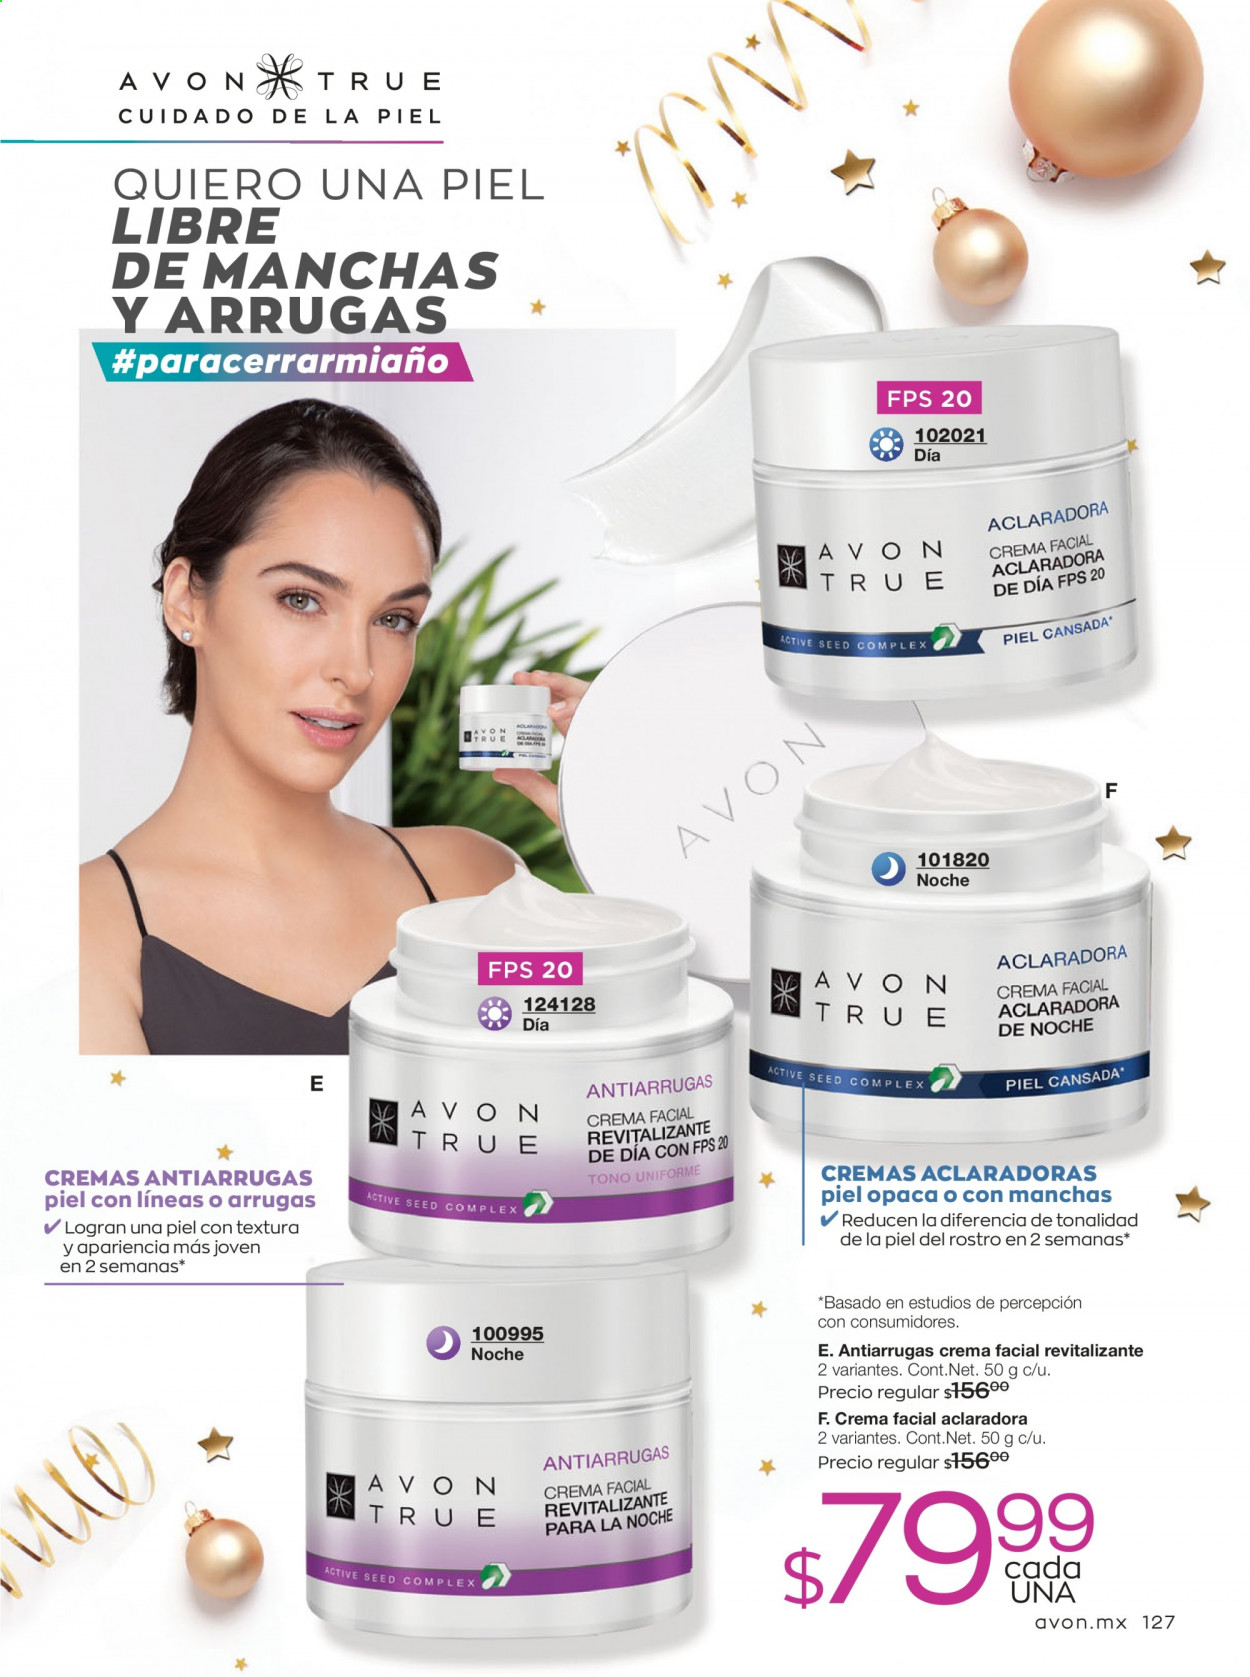 Folleto actual Avon - 7.11.2020 - 9.12.2020 - Ventas - avon true, crema facial. Página 127.